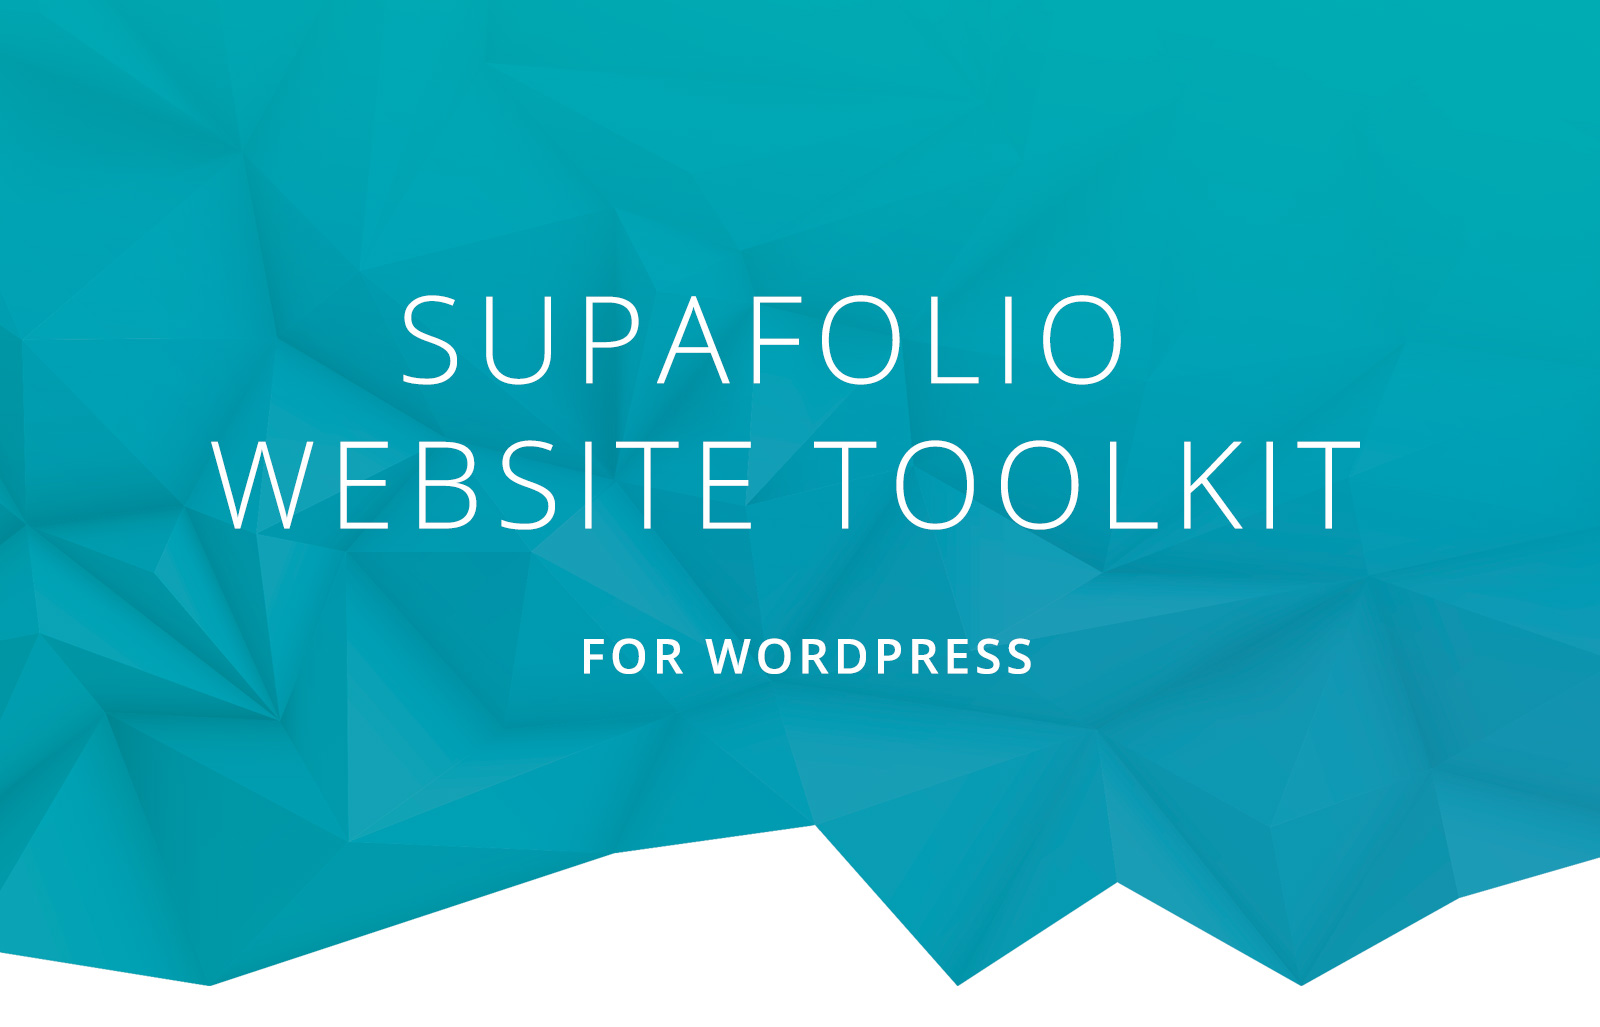 Free up your time and unleash your creativity with Supafolio Website Tool for WordPress